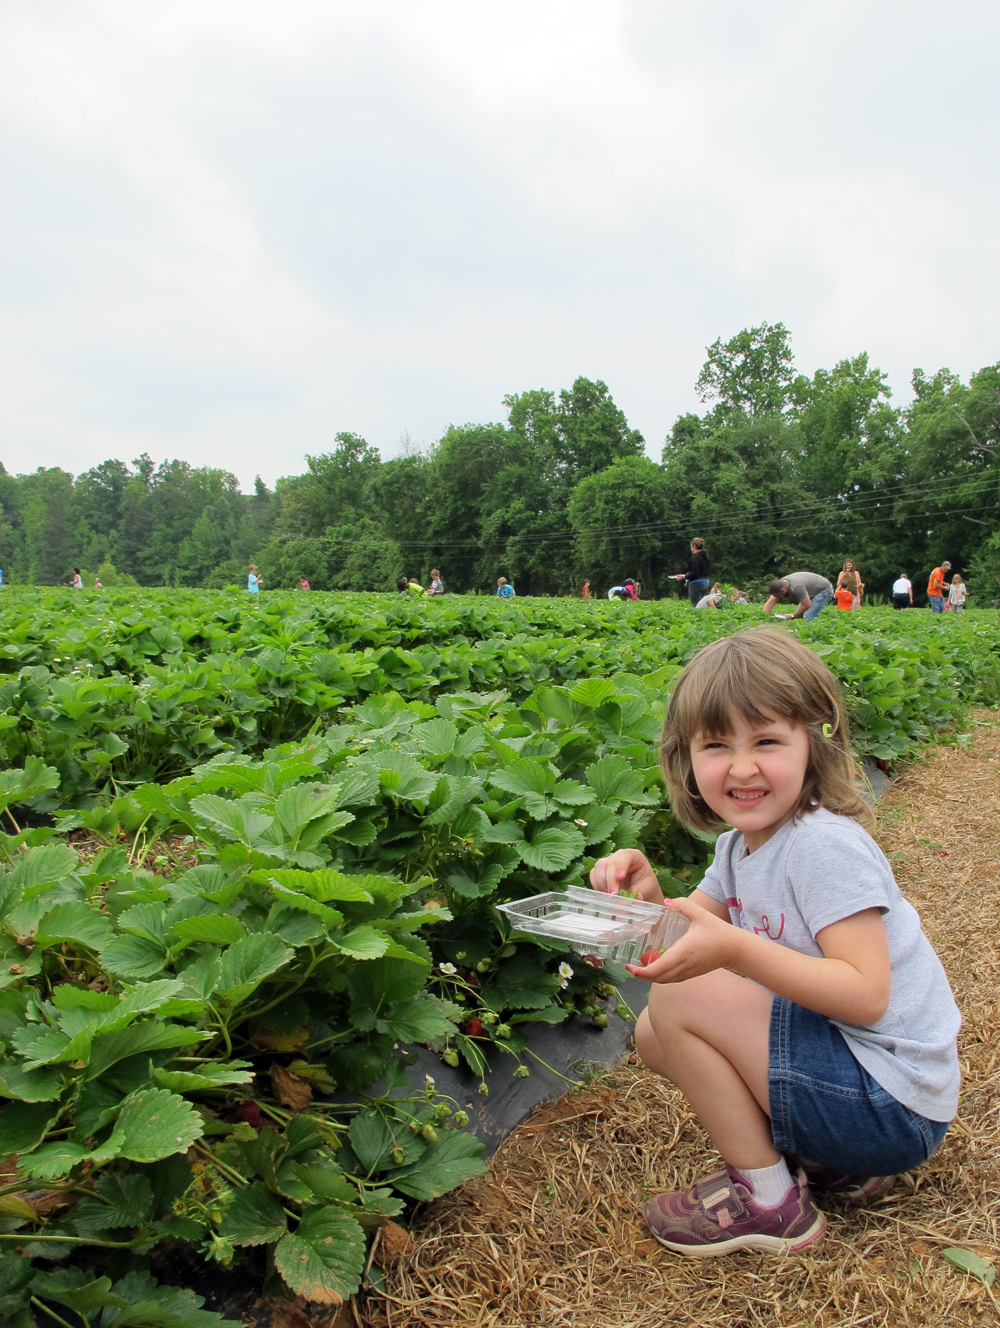 a trip to the strawberry patch!